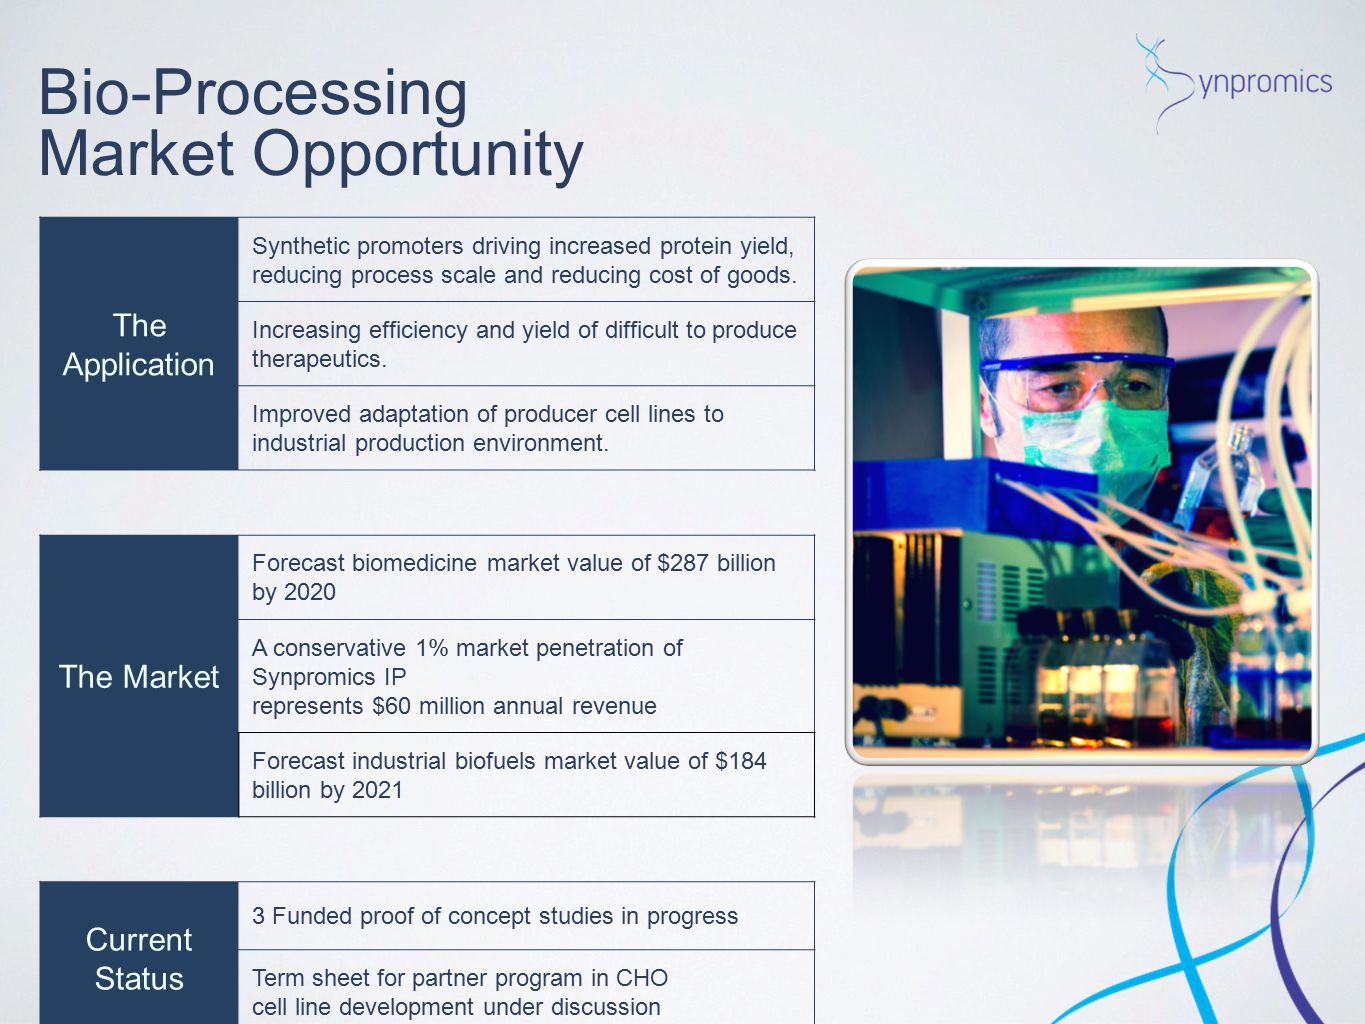 Bio-Processing Market Opportunity